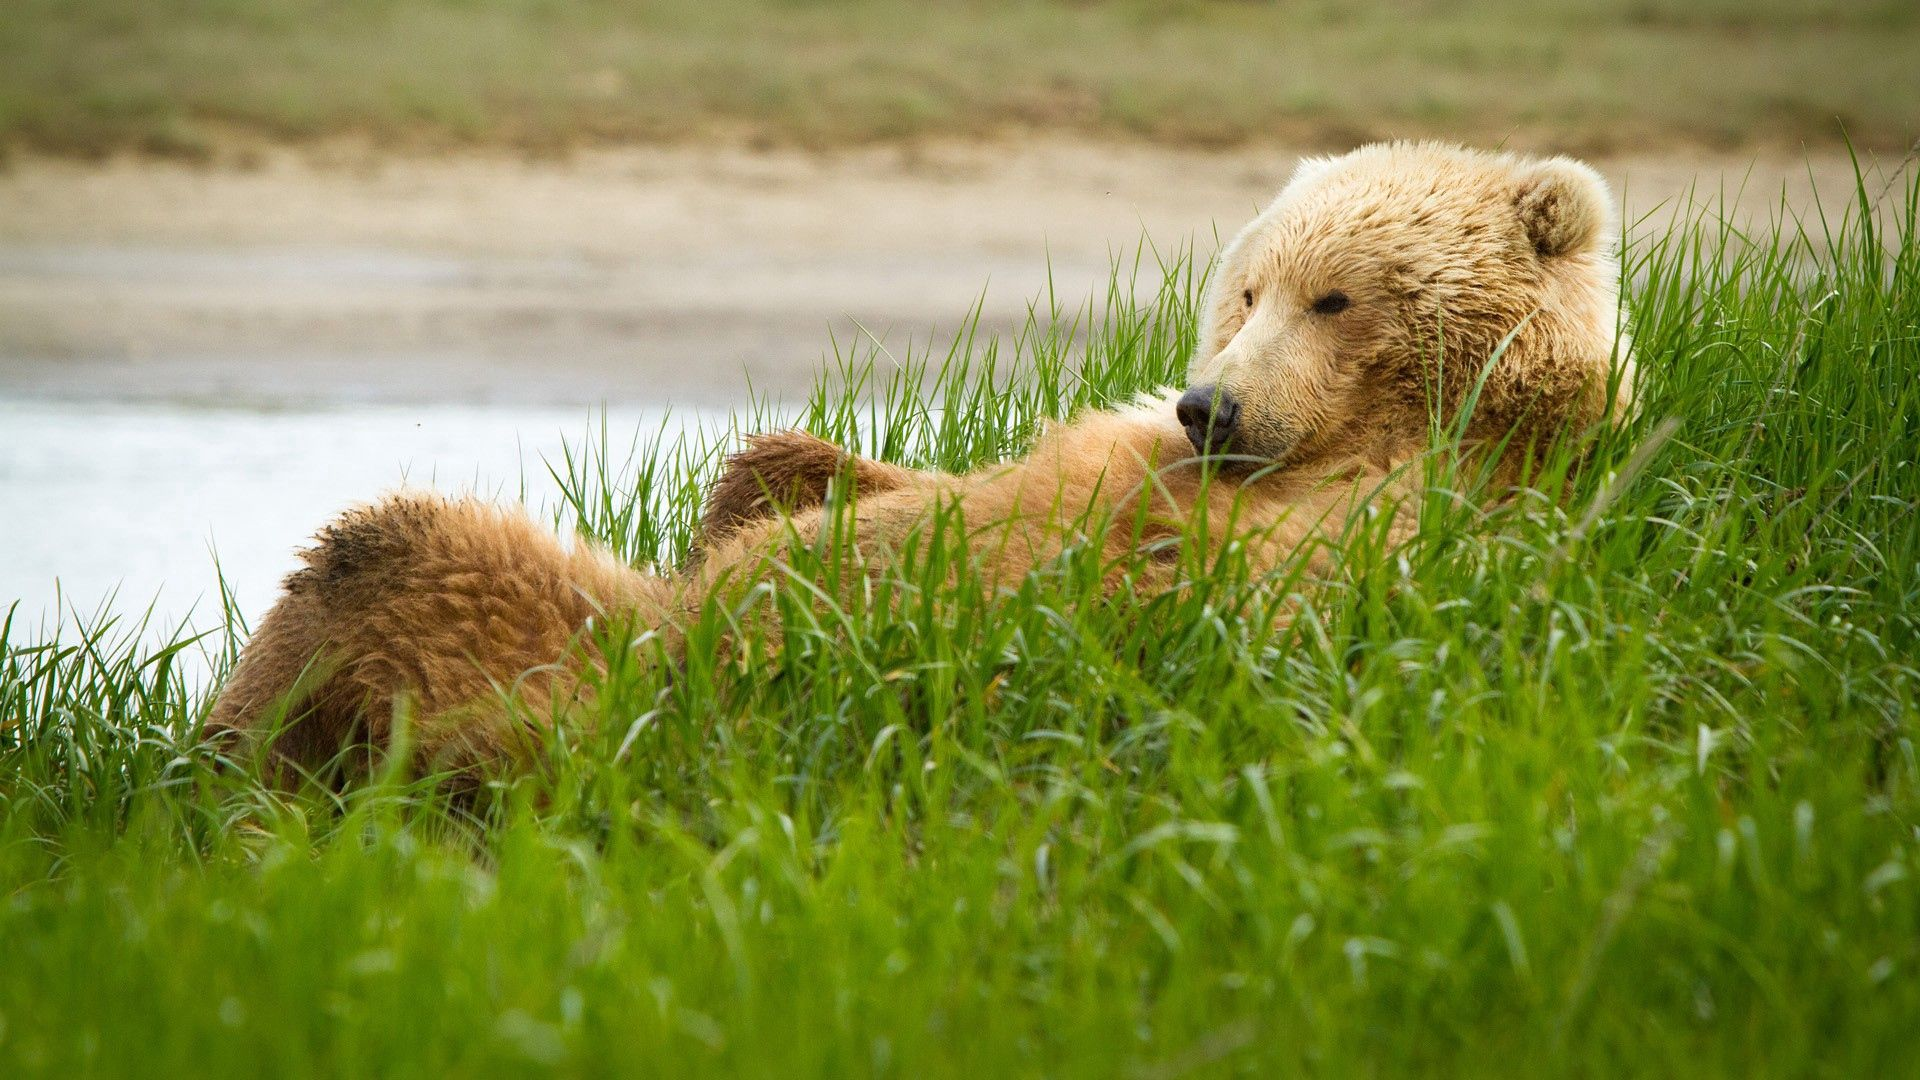 62034 Screensavers and Wallpapers Bear for phone. Download Animals, Grass, To Lie Down, Lie, Bear, Fat, Thick pictures for free